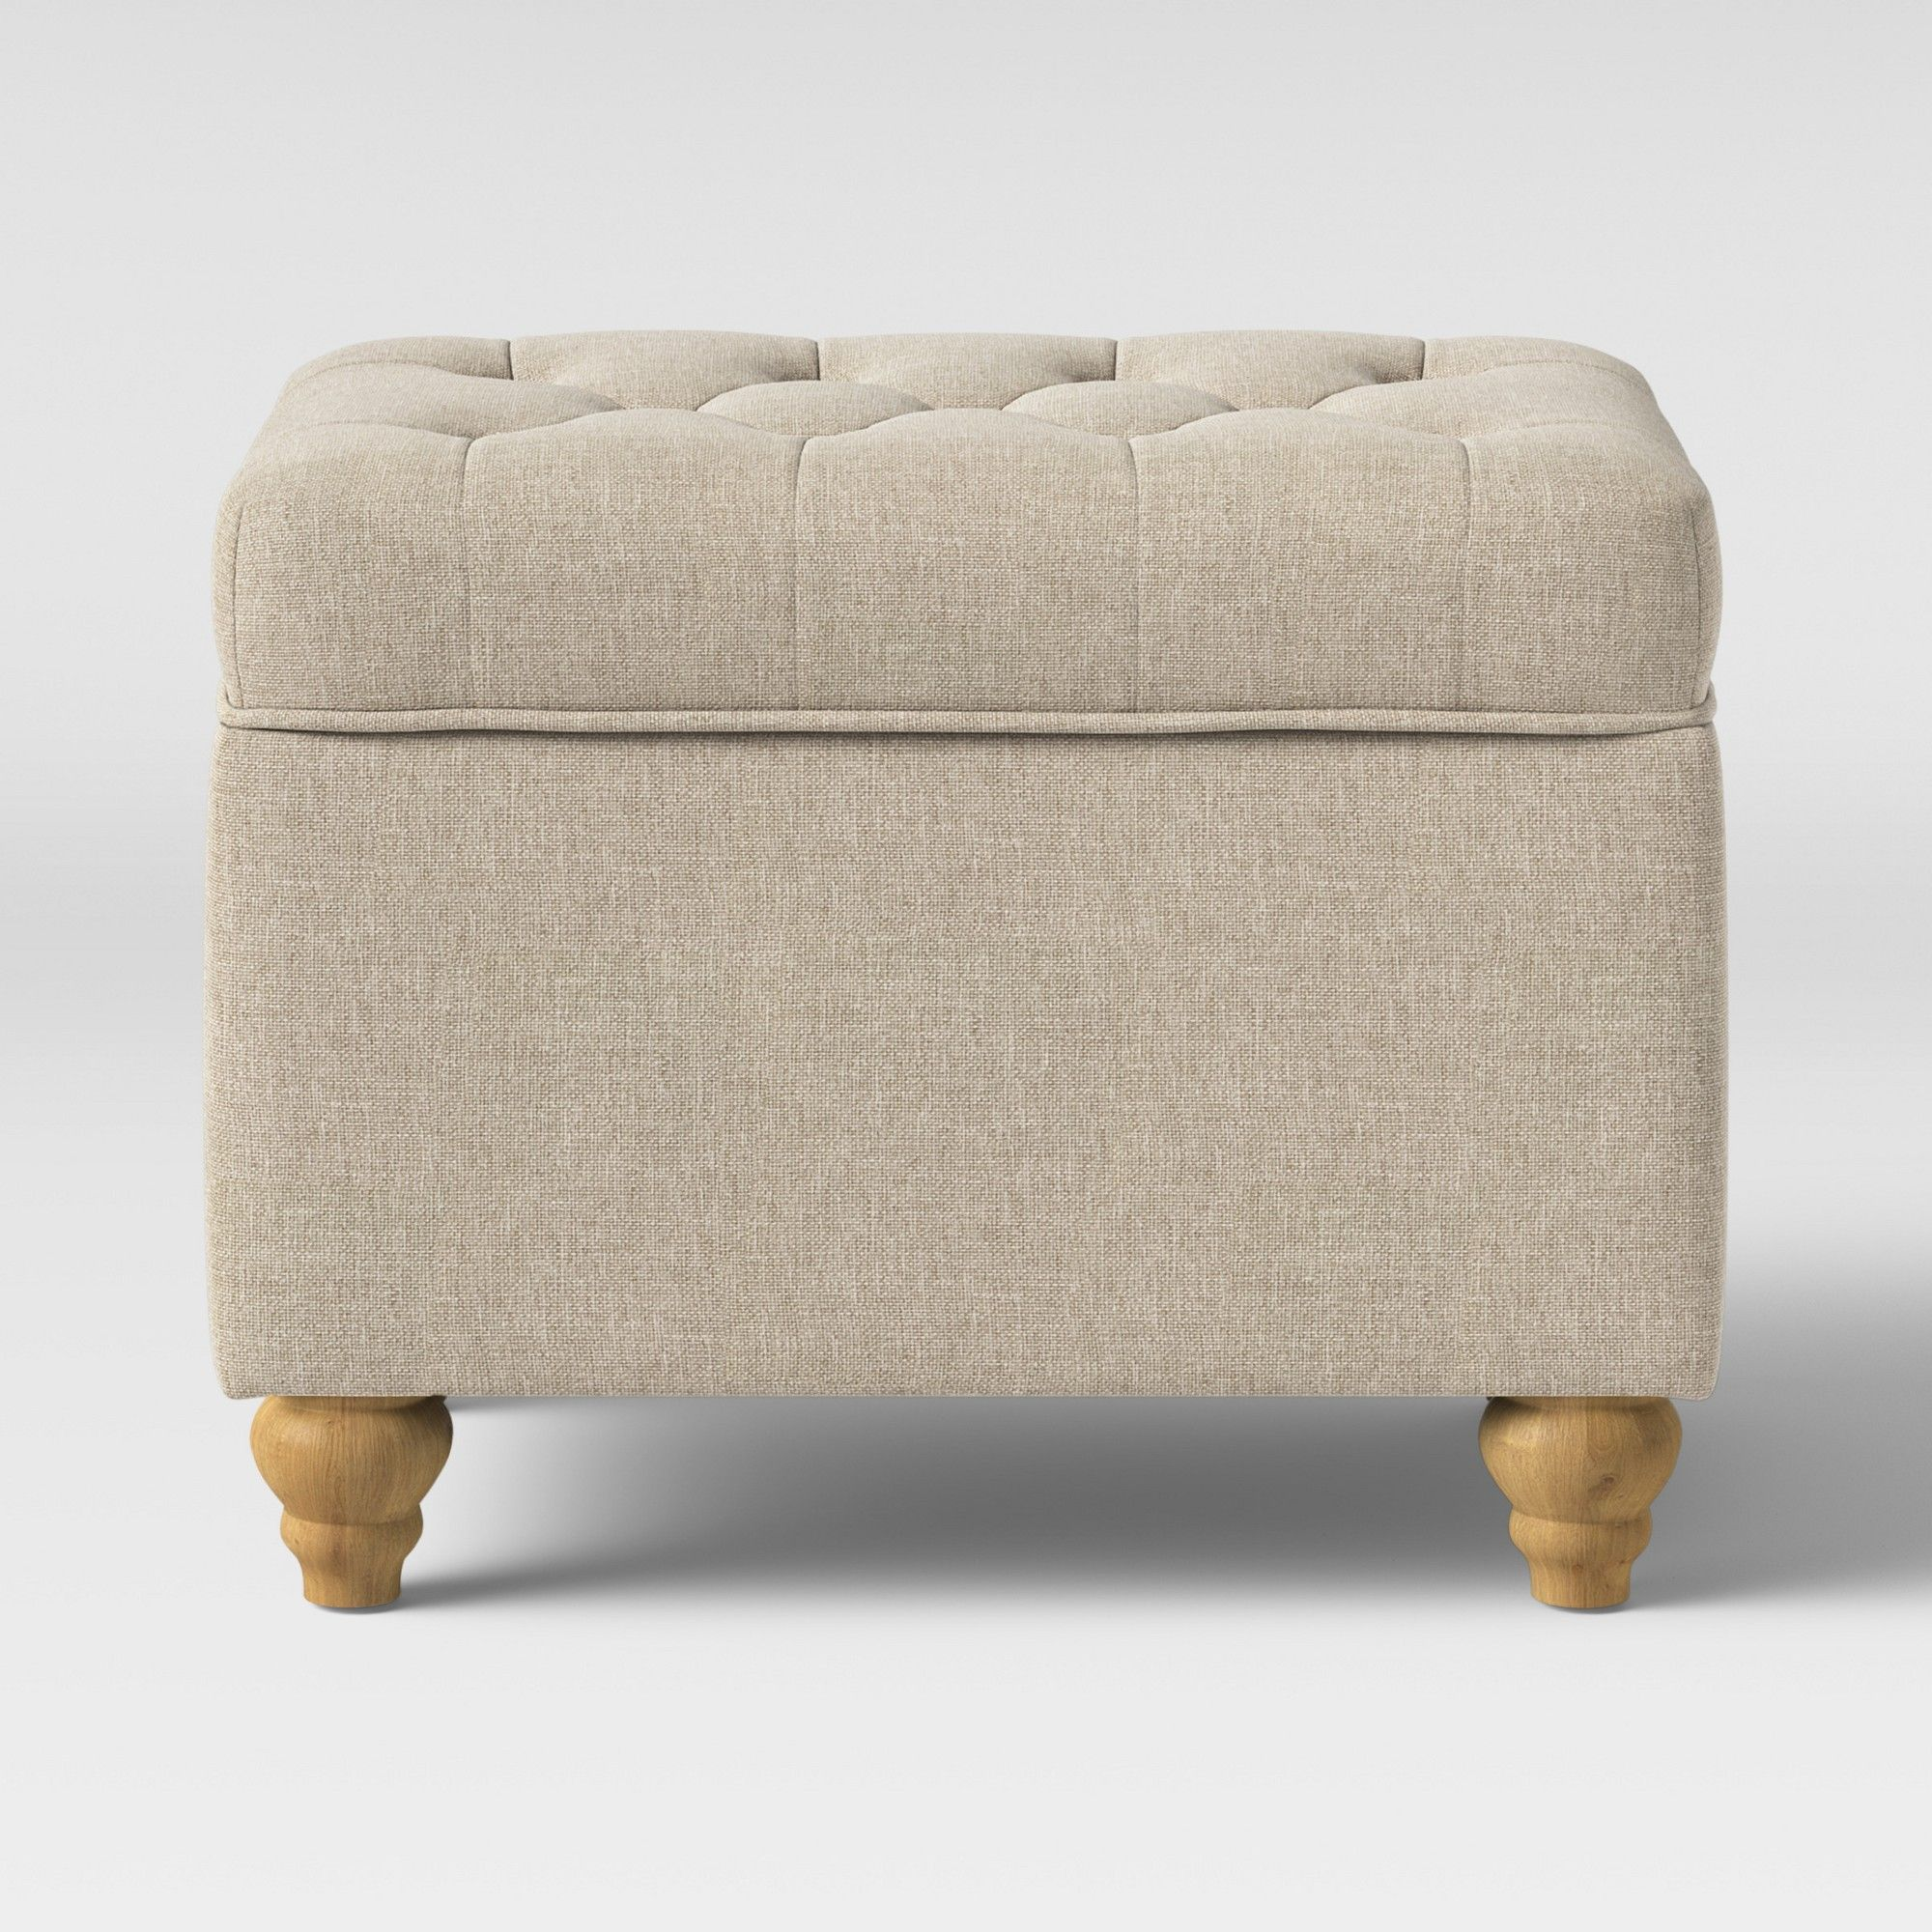 Frankford Tufted Storage Ottoman Cream With Natural Legs